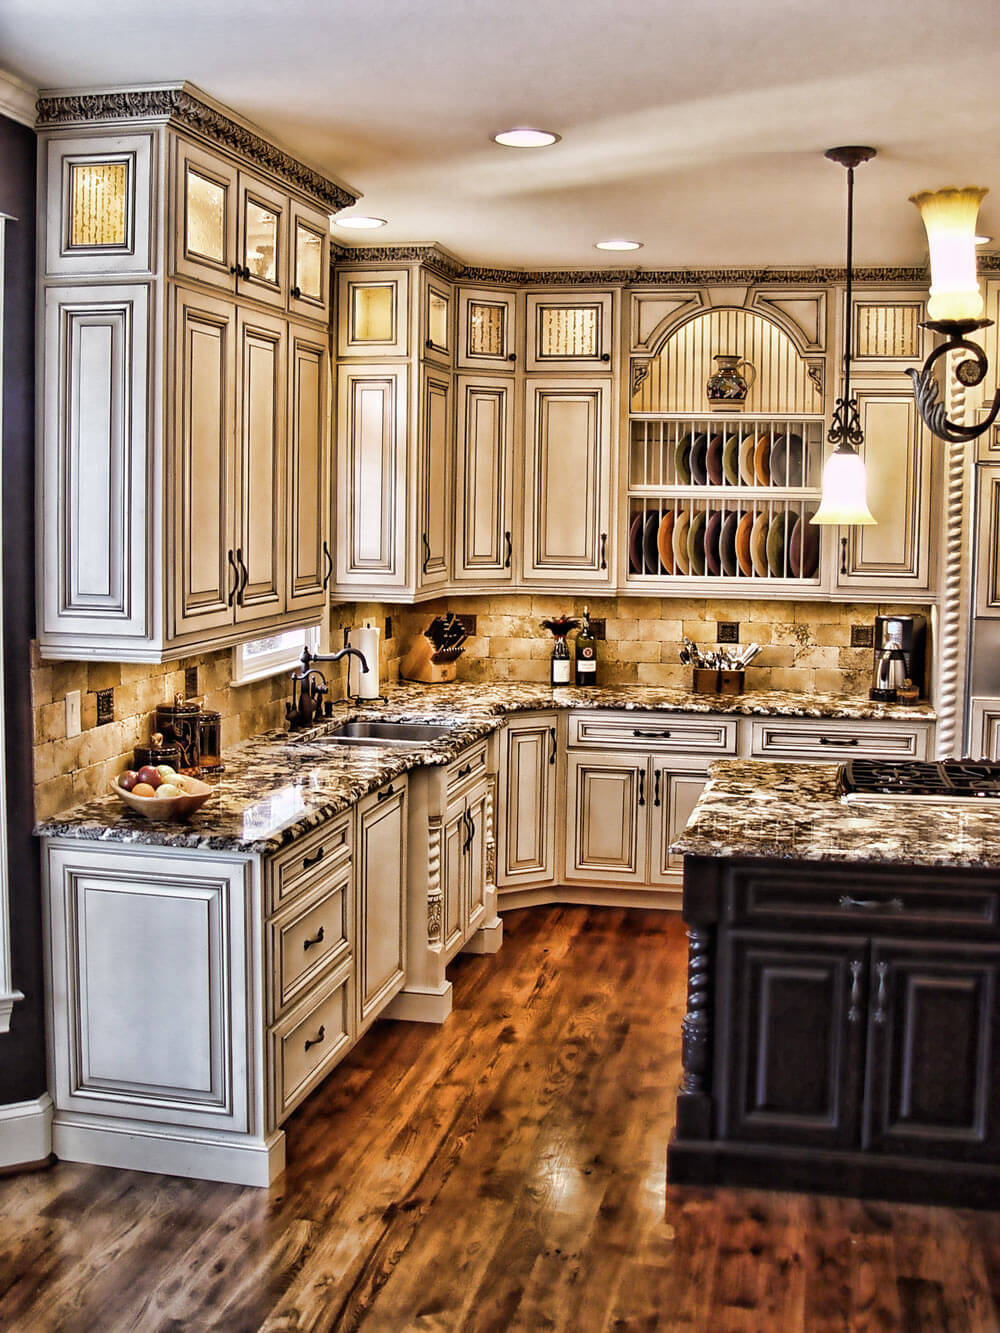 maison chic rustic kitchen cabinet designs - Kitchen Cabinet Ideas